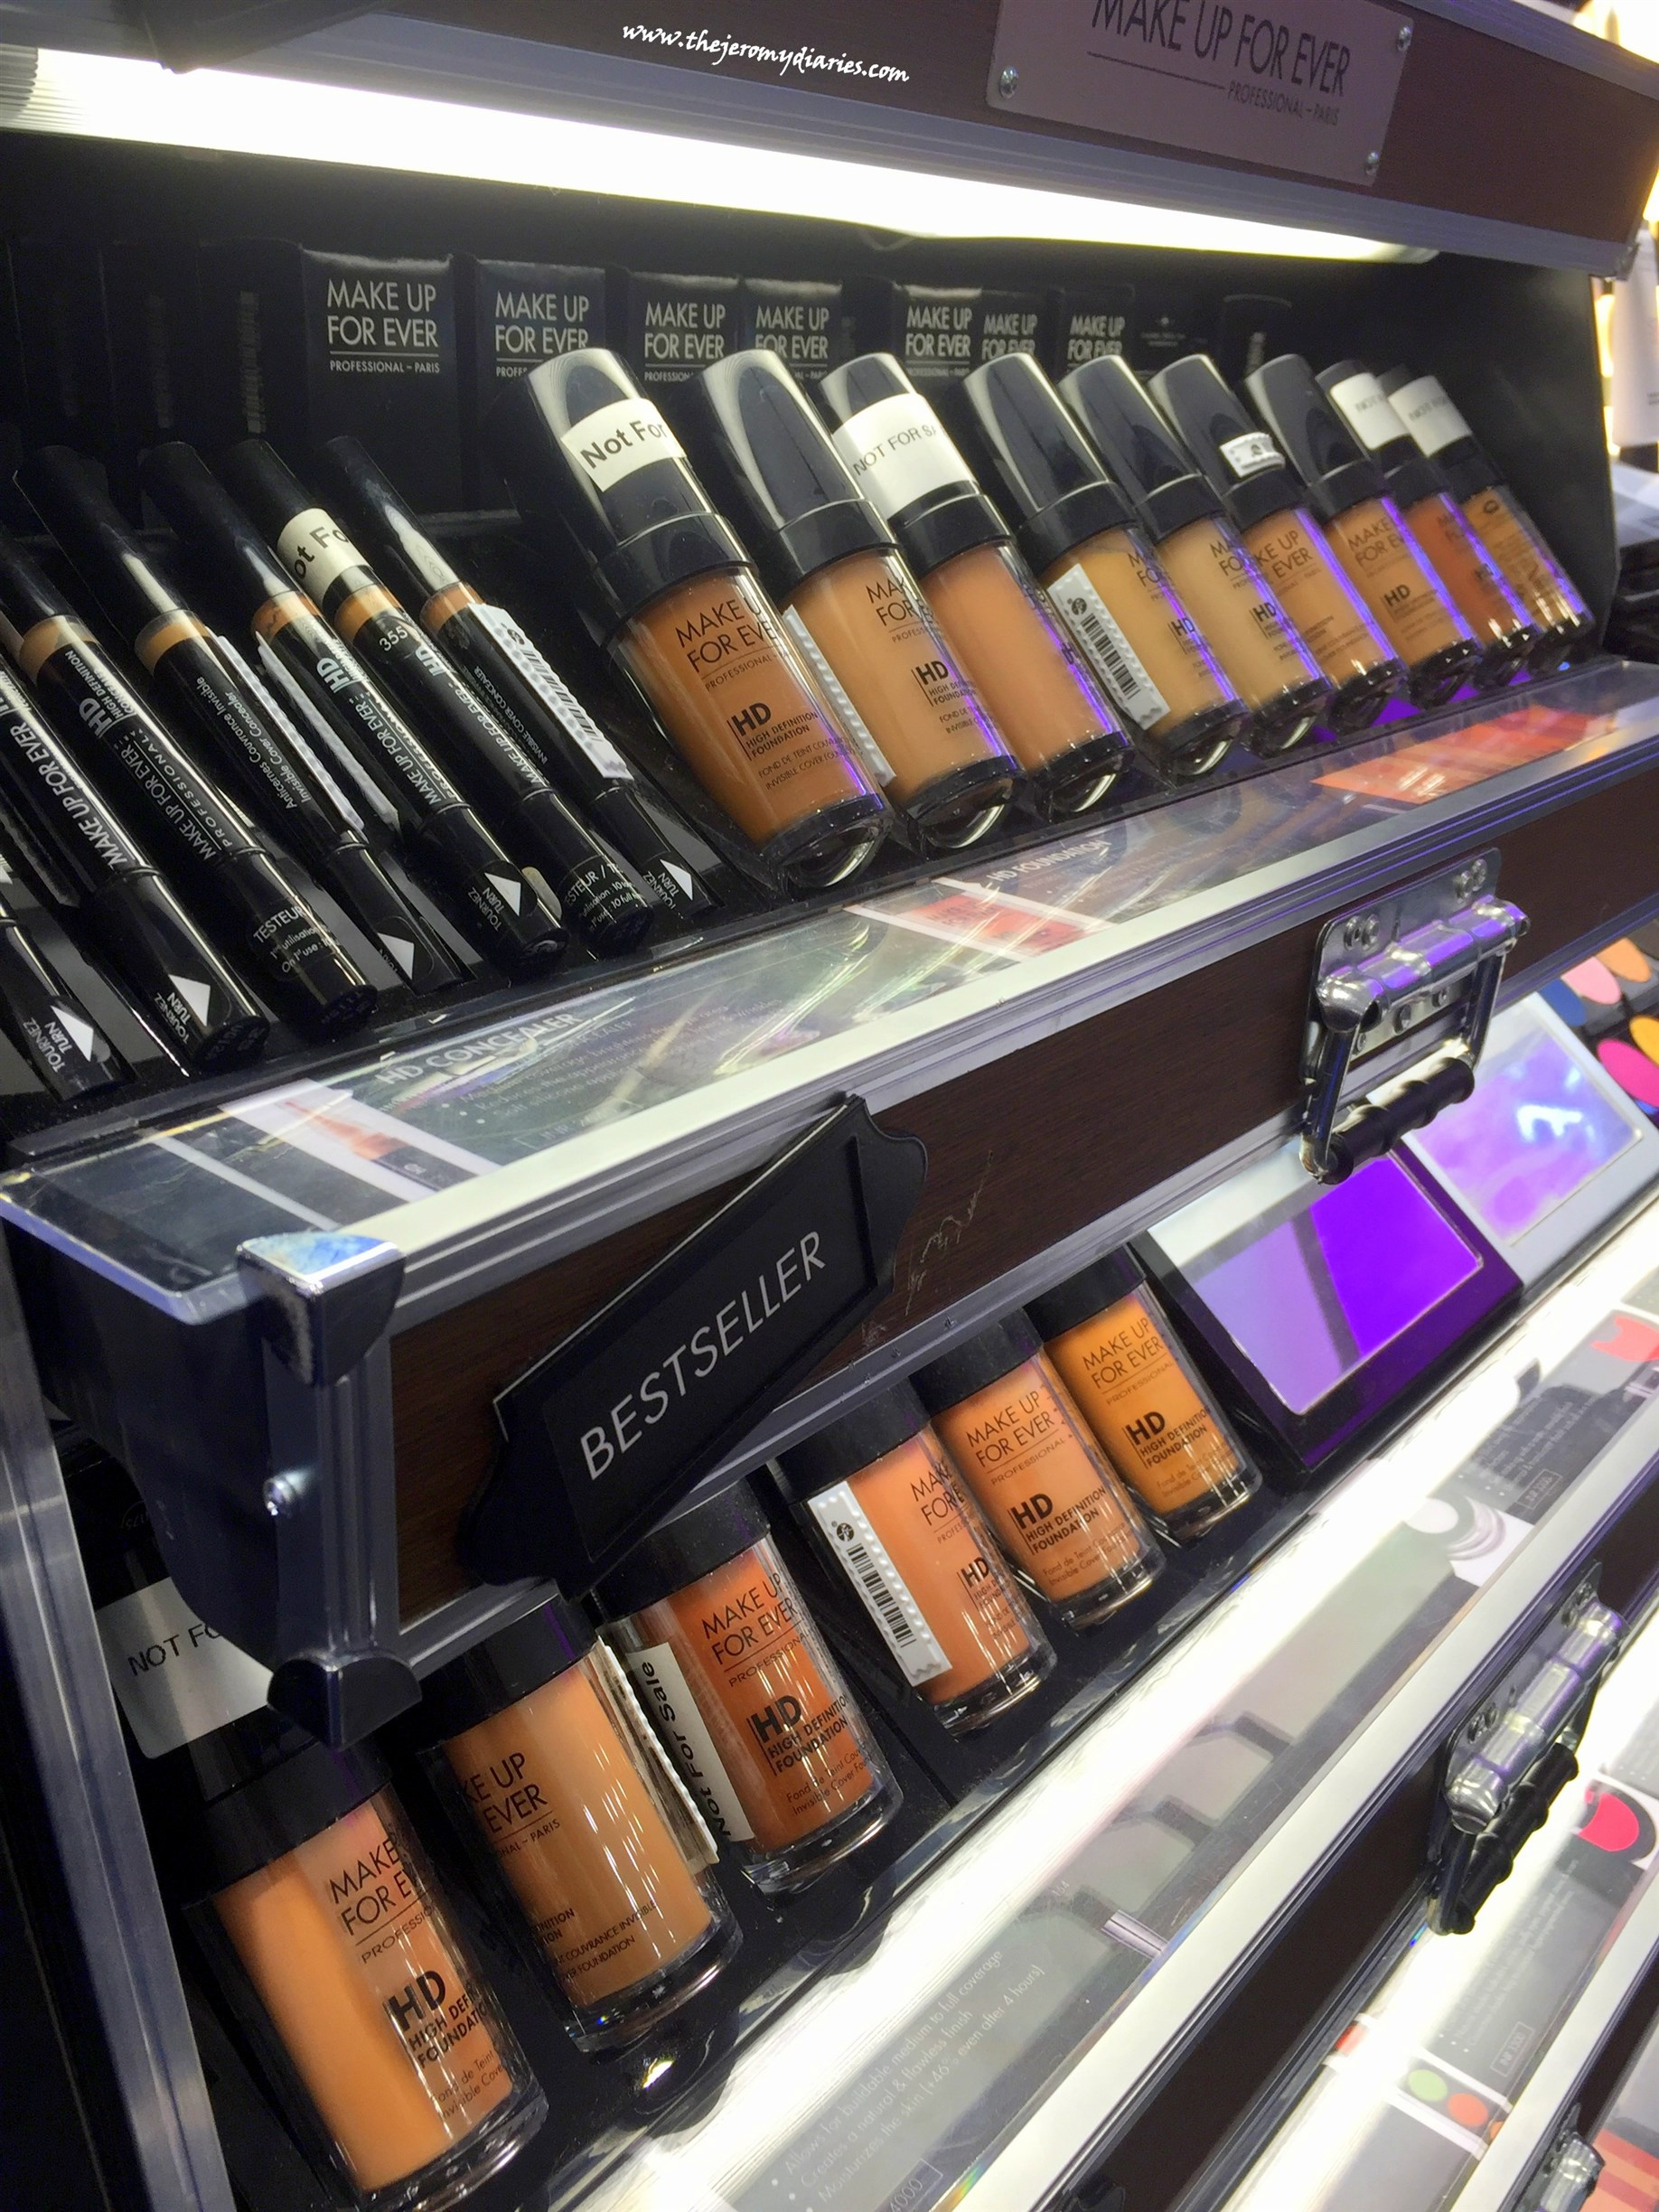 make up forever hd foundations sephora in bangalore the jeromy diaries (1836 x 2448)